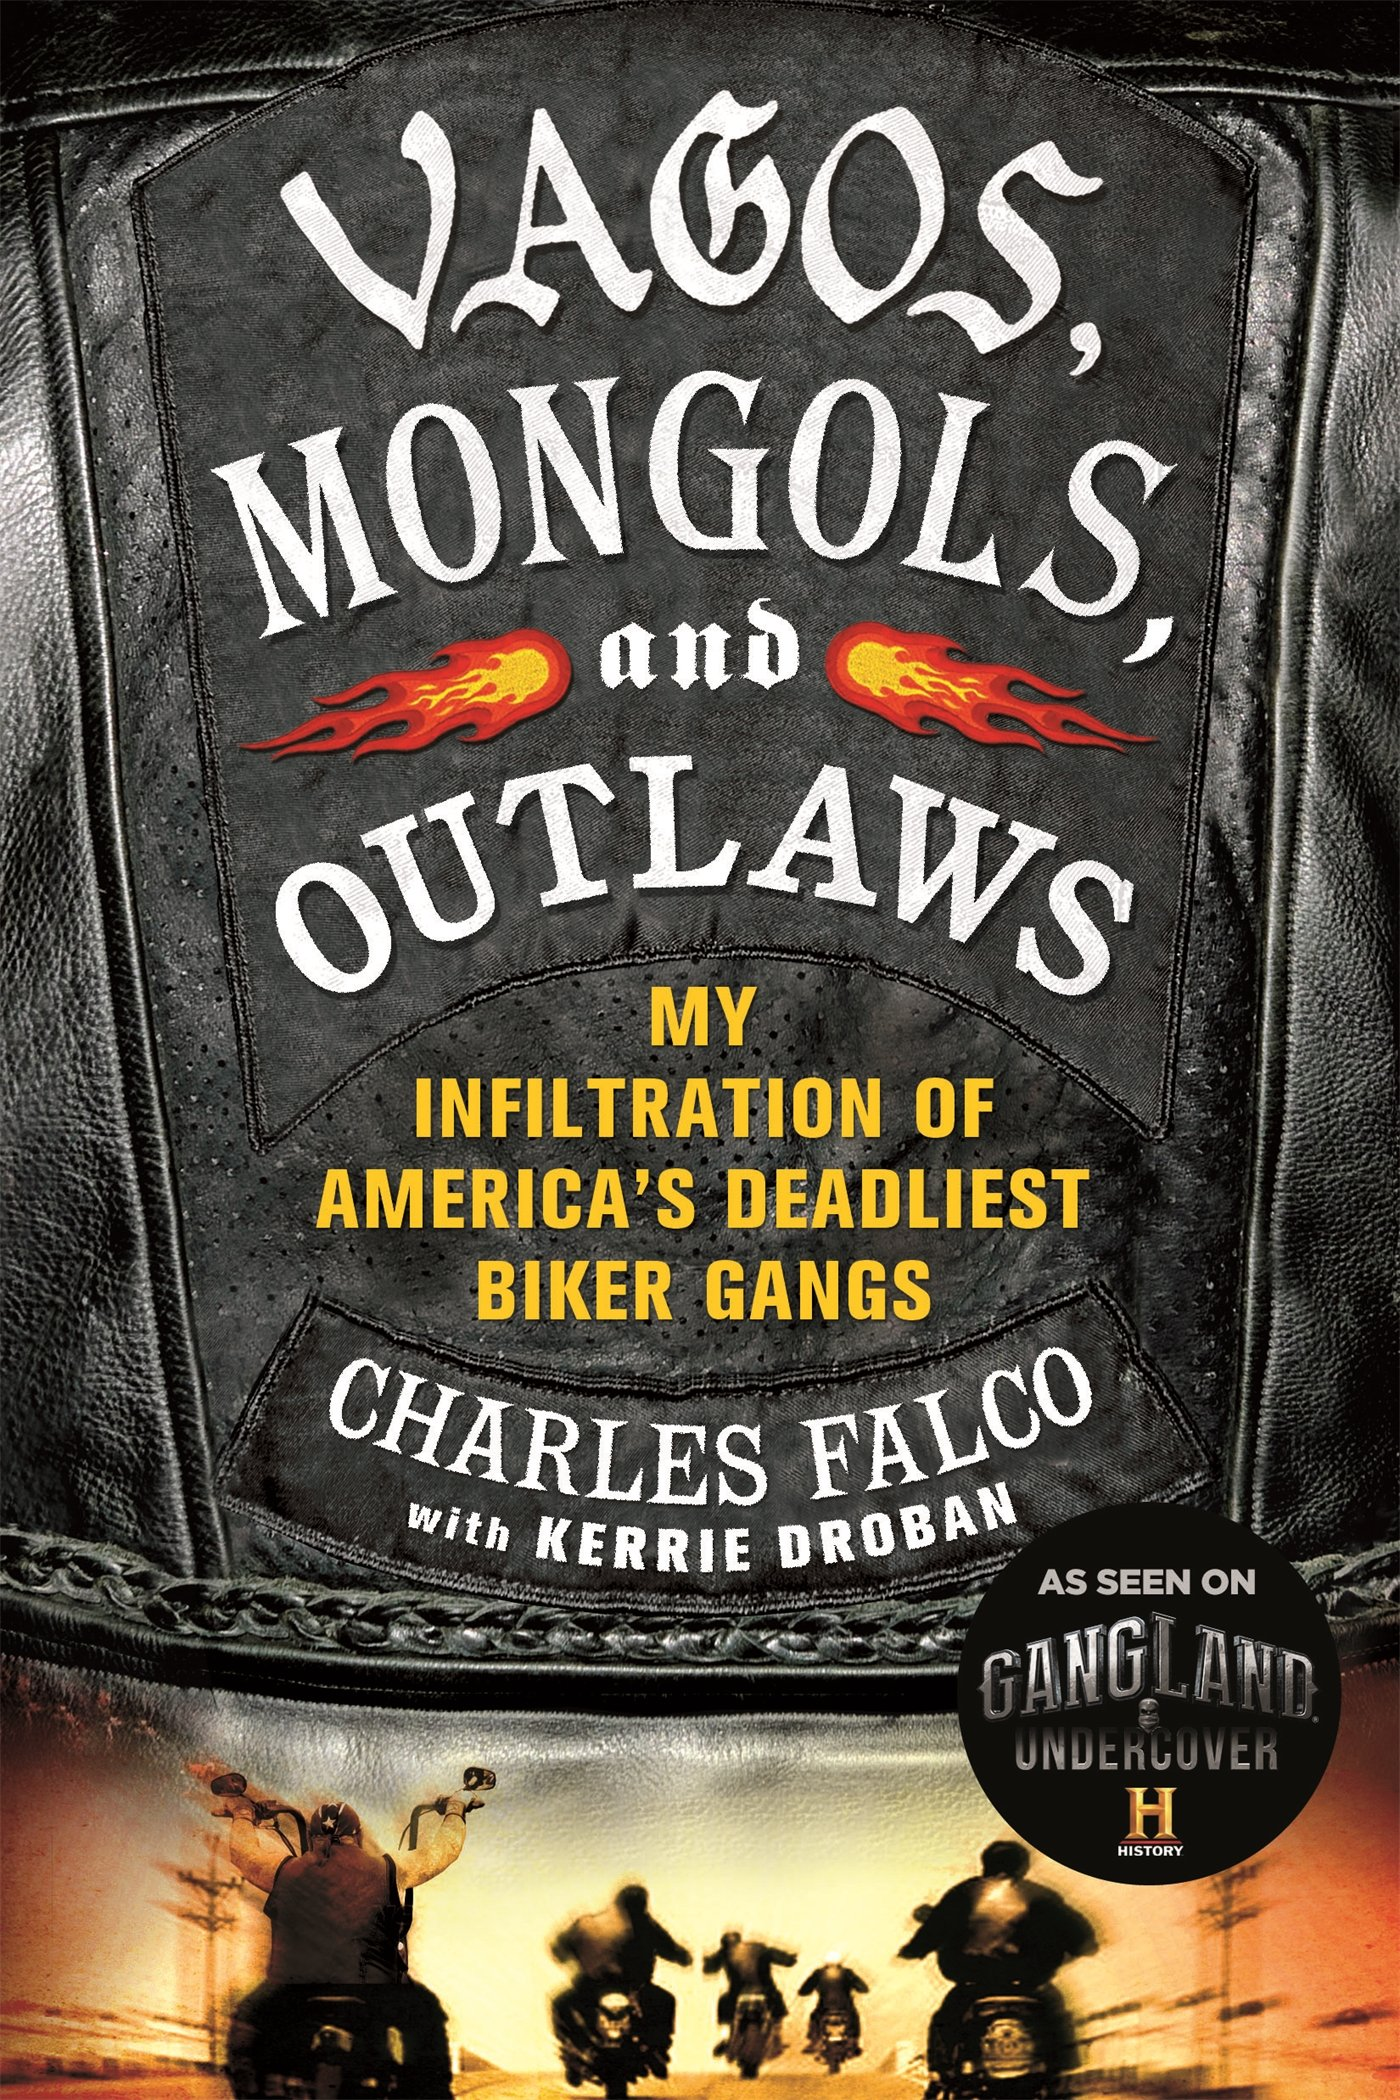 Vagos, Mongols, and Outlaws: My Infiltration of America's Deadliest